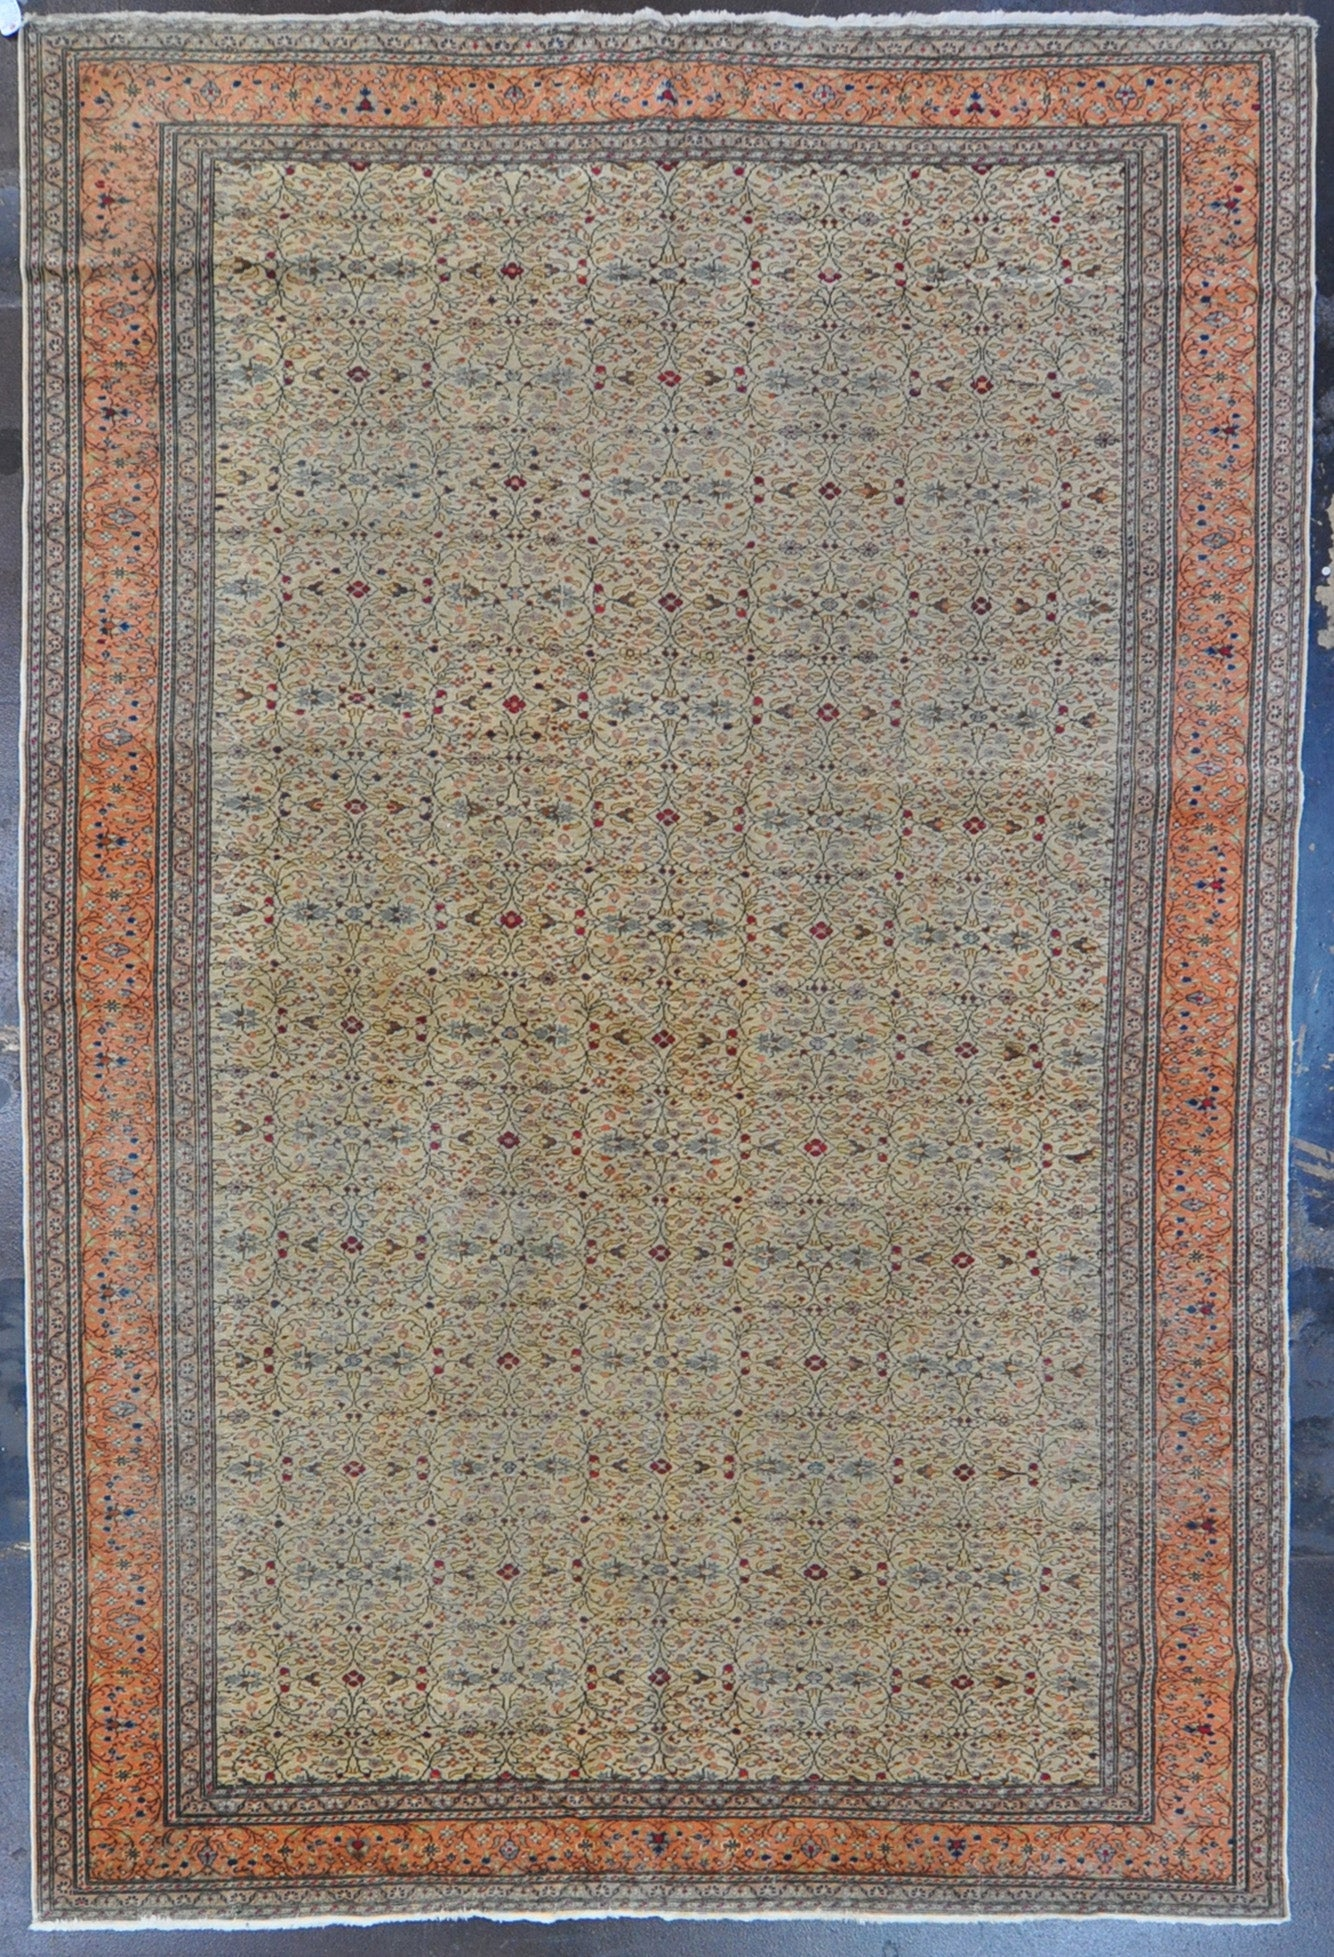 Rug Id: 4244 Antique Turkisk keysari 8x11